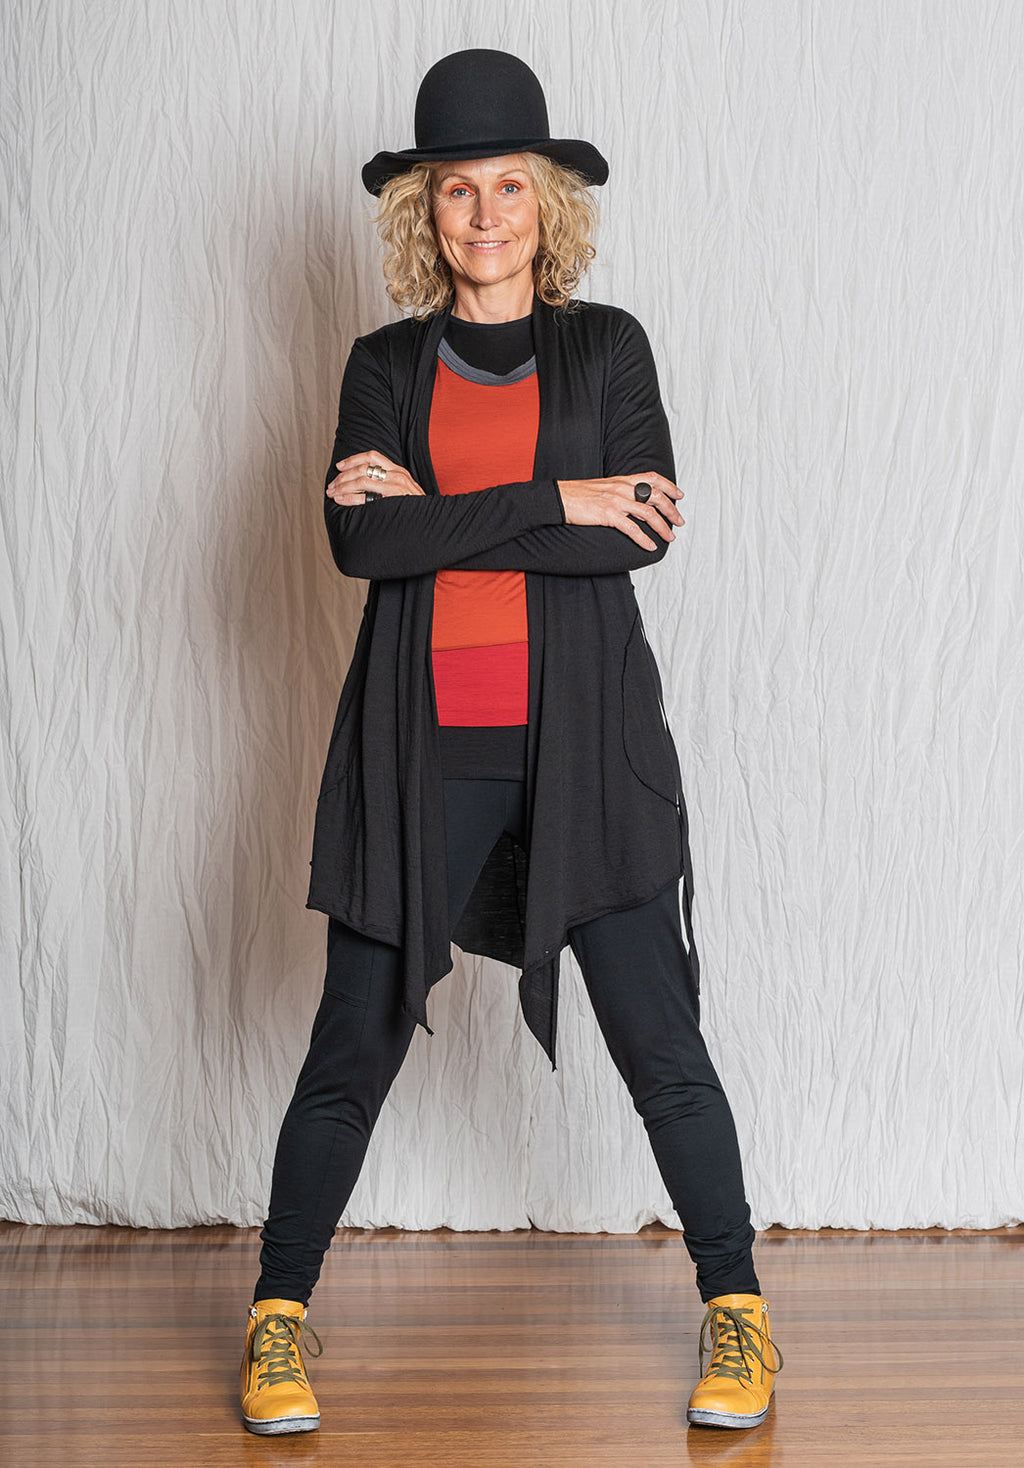 sustainable fashion online, sustainable fashion australia, 100% made in australia, ethical clothing australia, wool cardi australia, cardigans australia,  womens cardigans australia, australian made cardigans